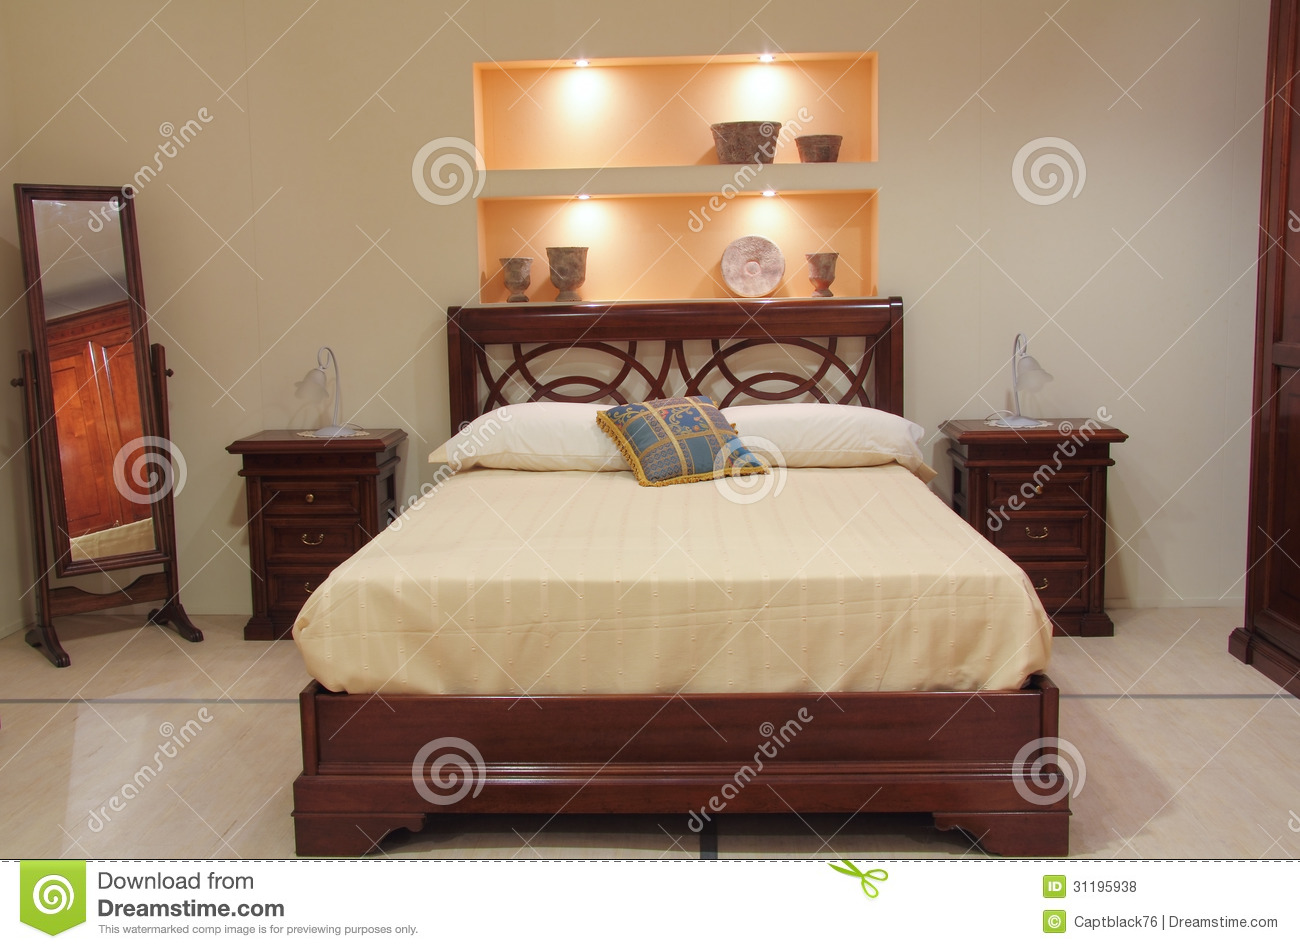 Meuble chambre a coucher 2016 for Les chambres a coucher